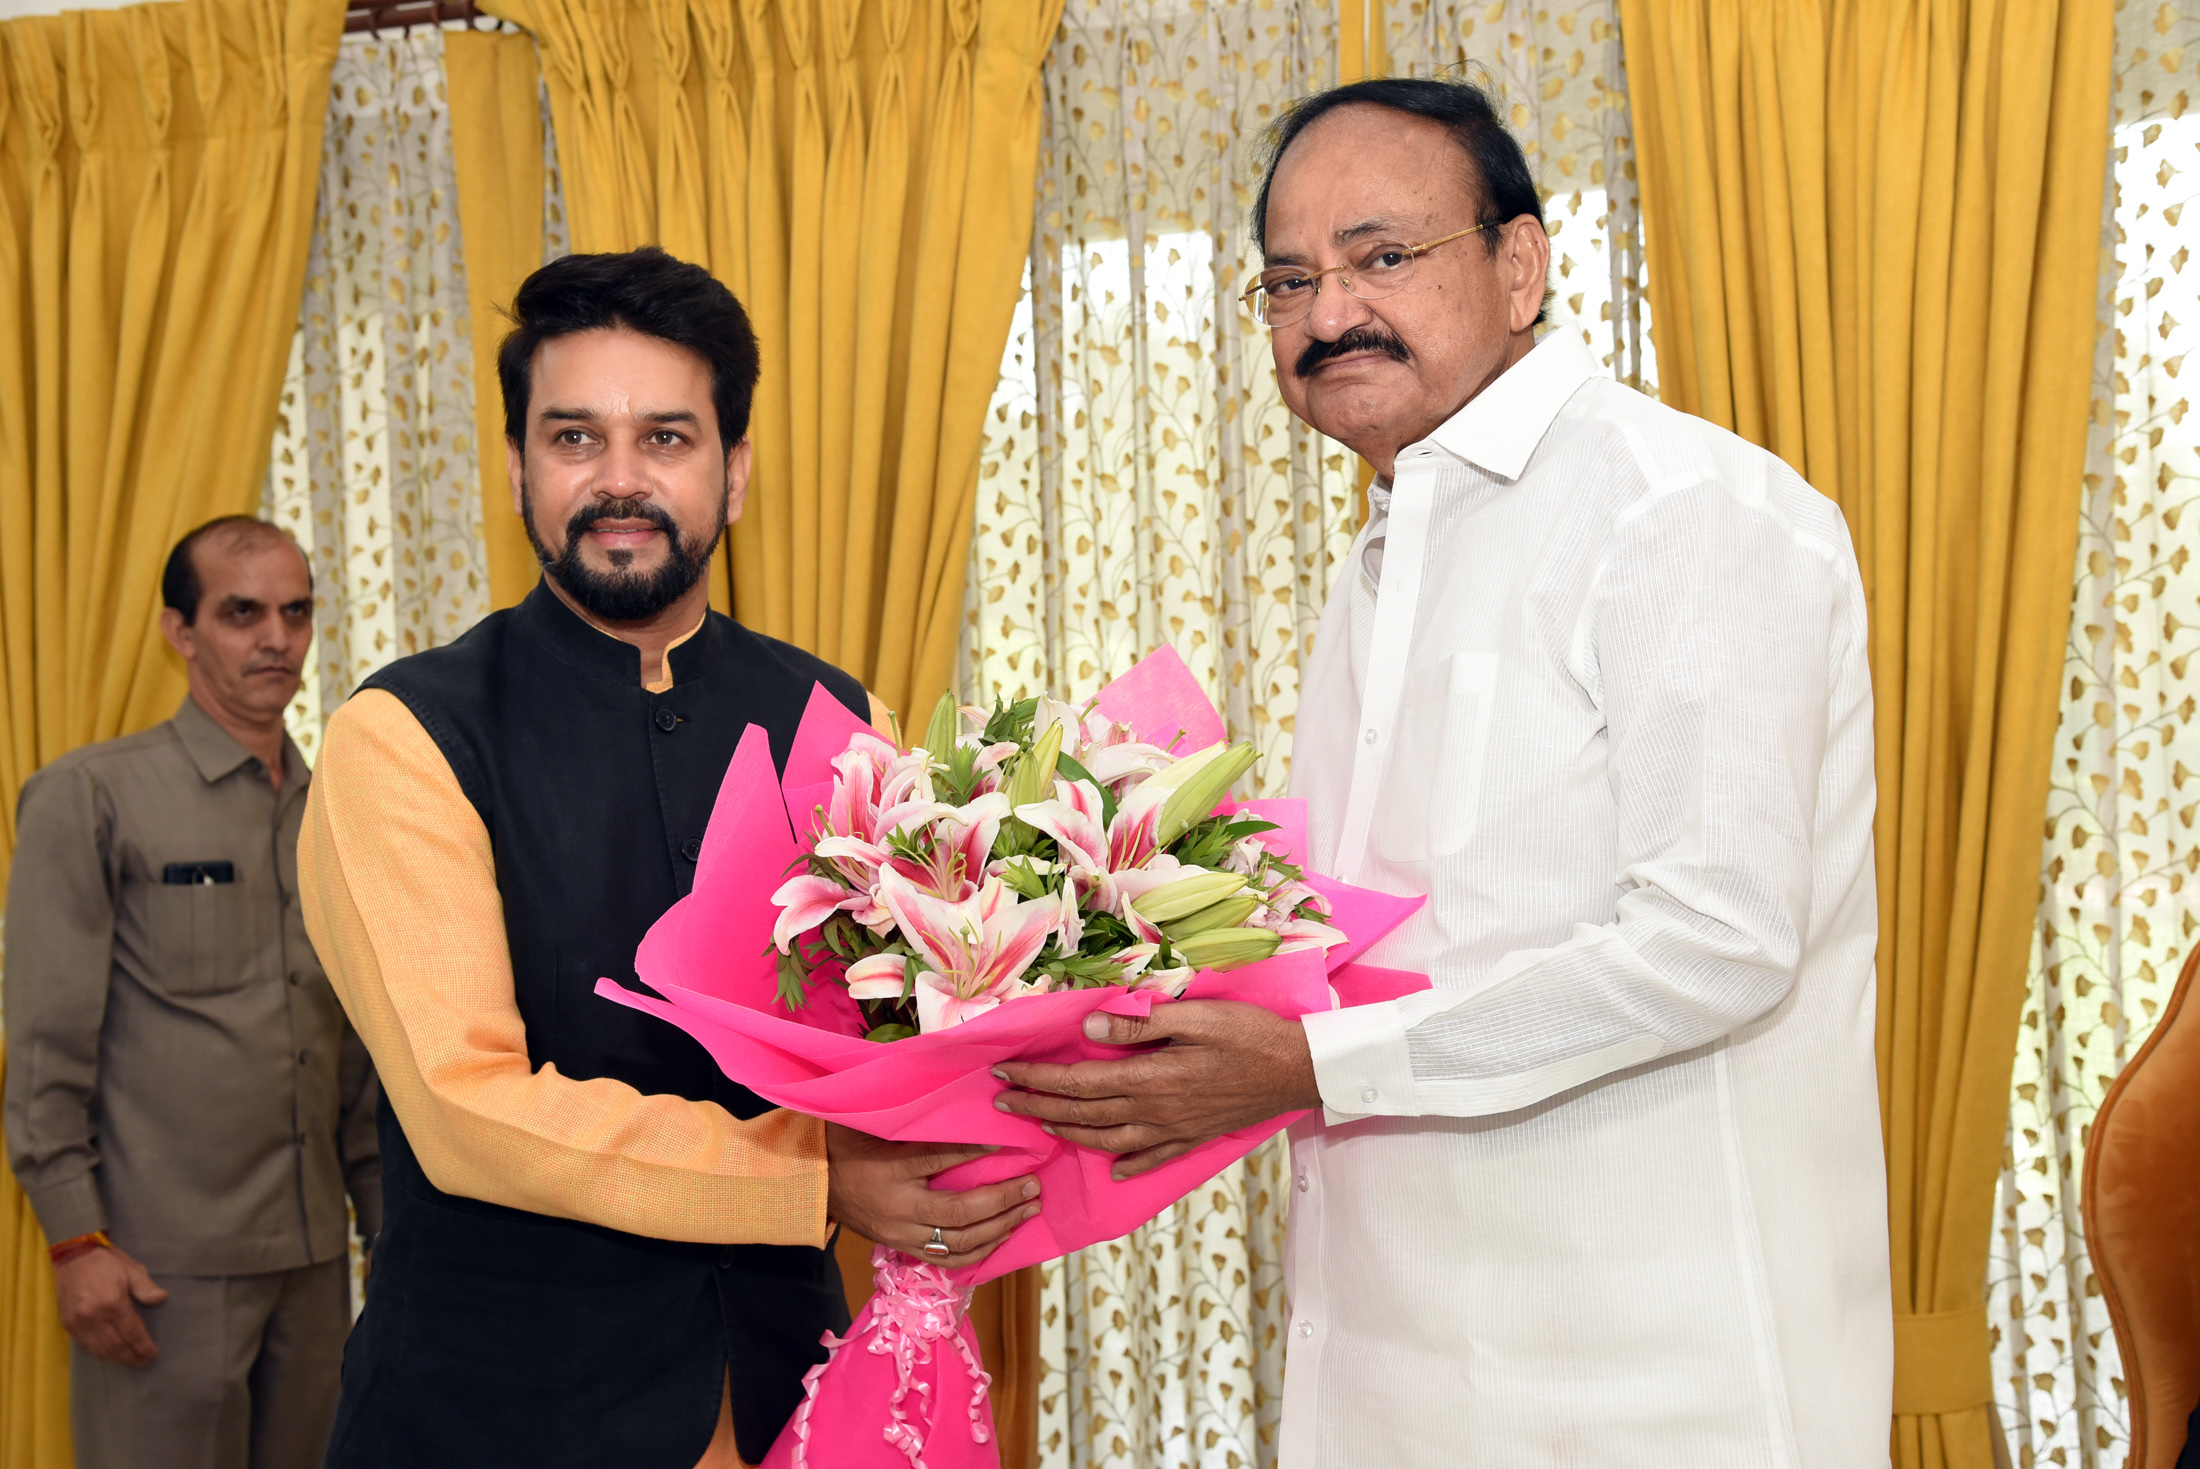 The Minister of State for Finance and Corporate Affairs, Shri Anurag Singh Thakur calling on the Vice President, Shri M. Venkaiah Naidu, in New Delhi on June 20, 2019.